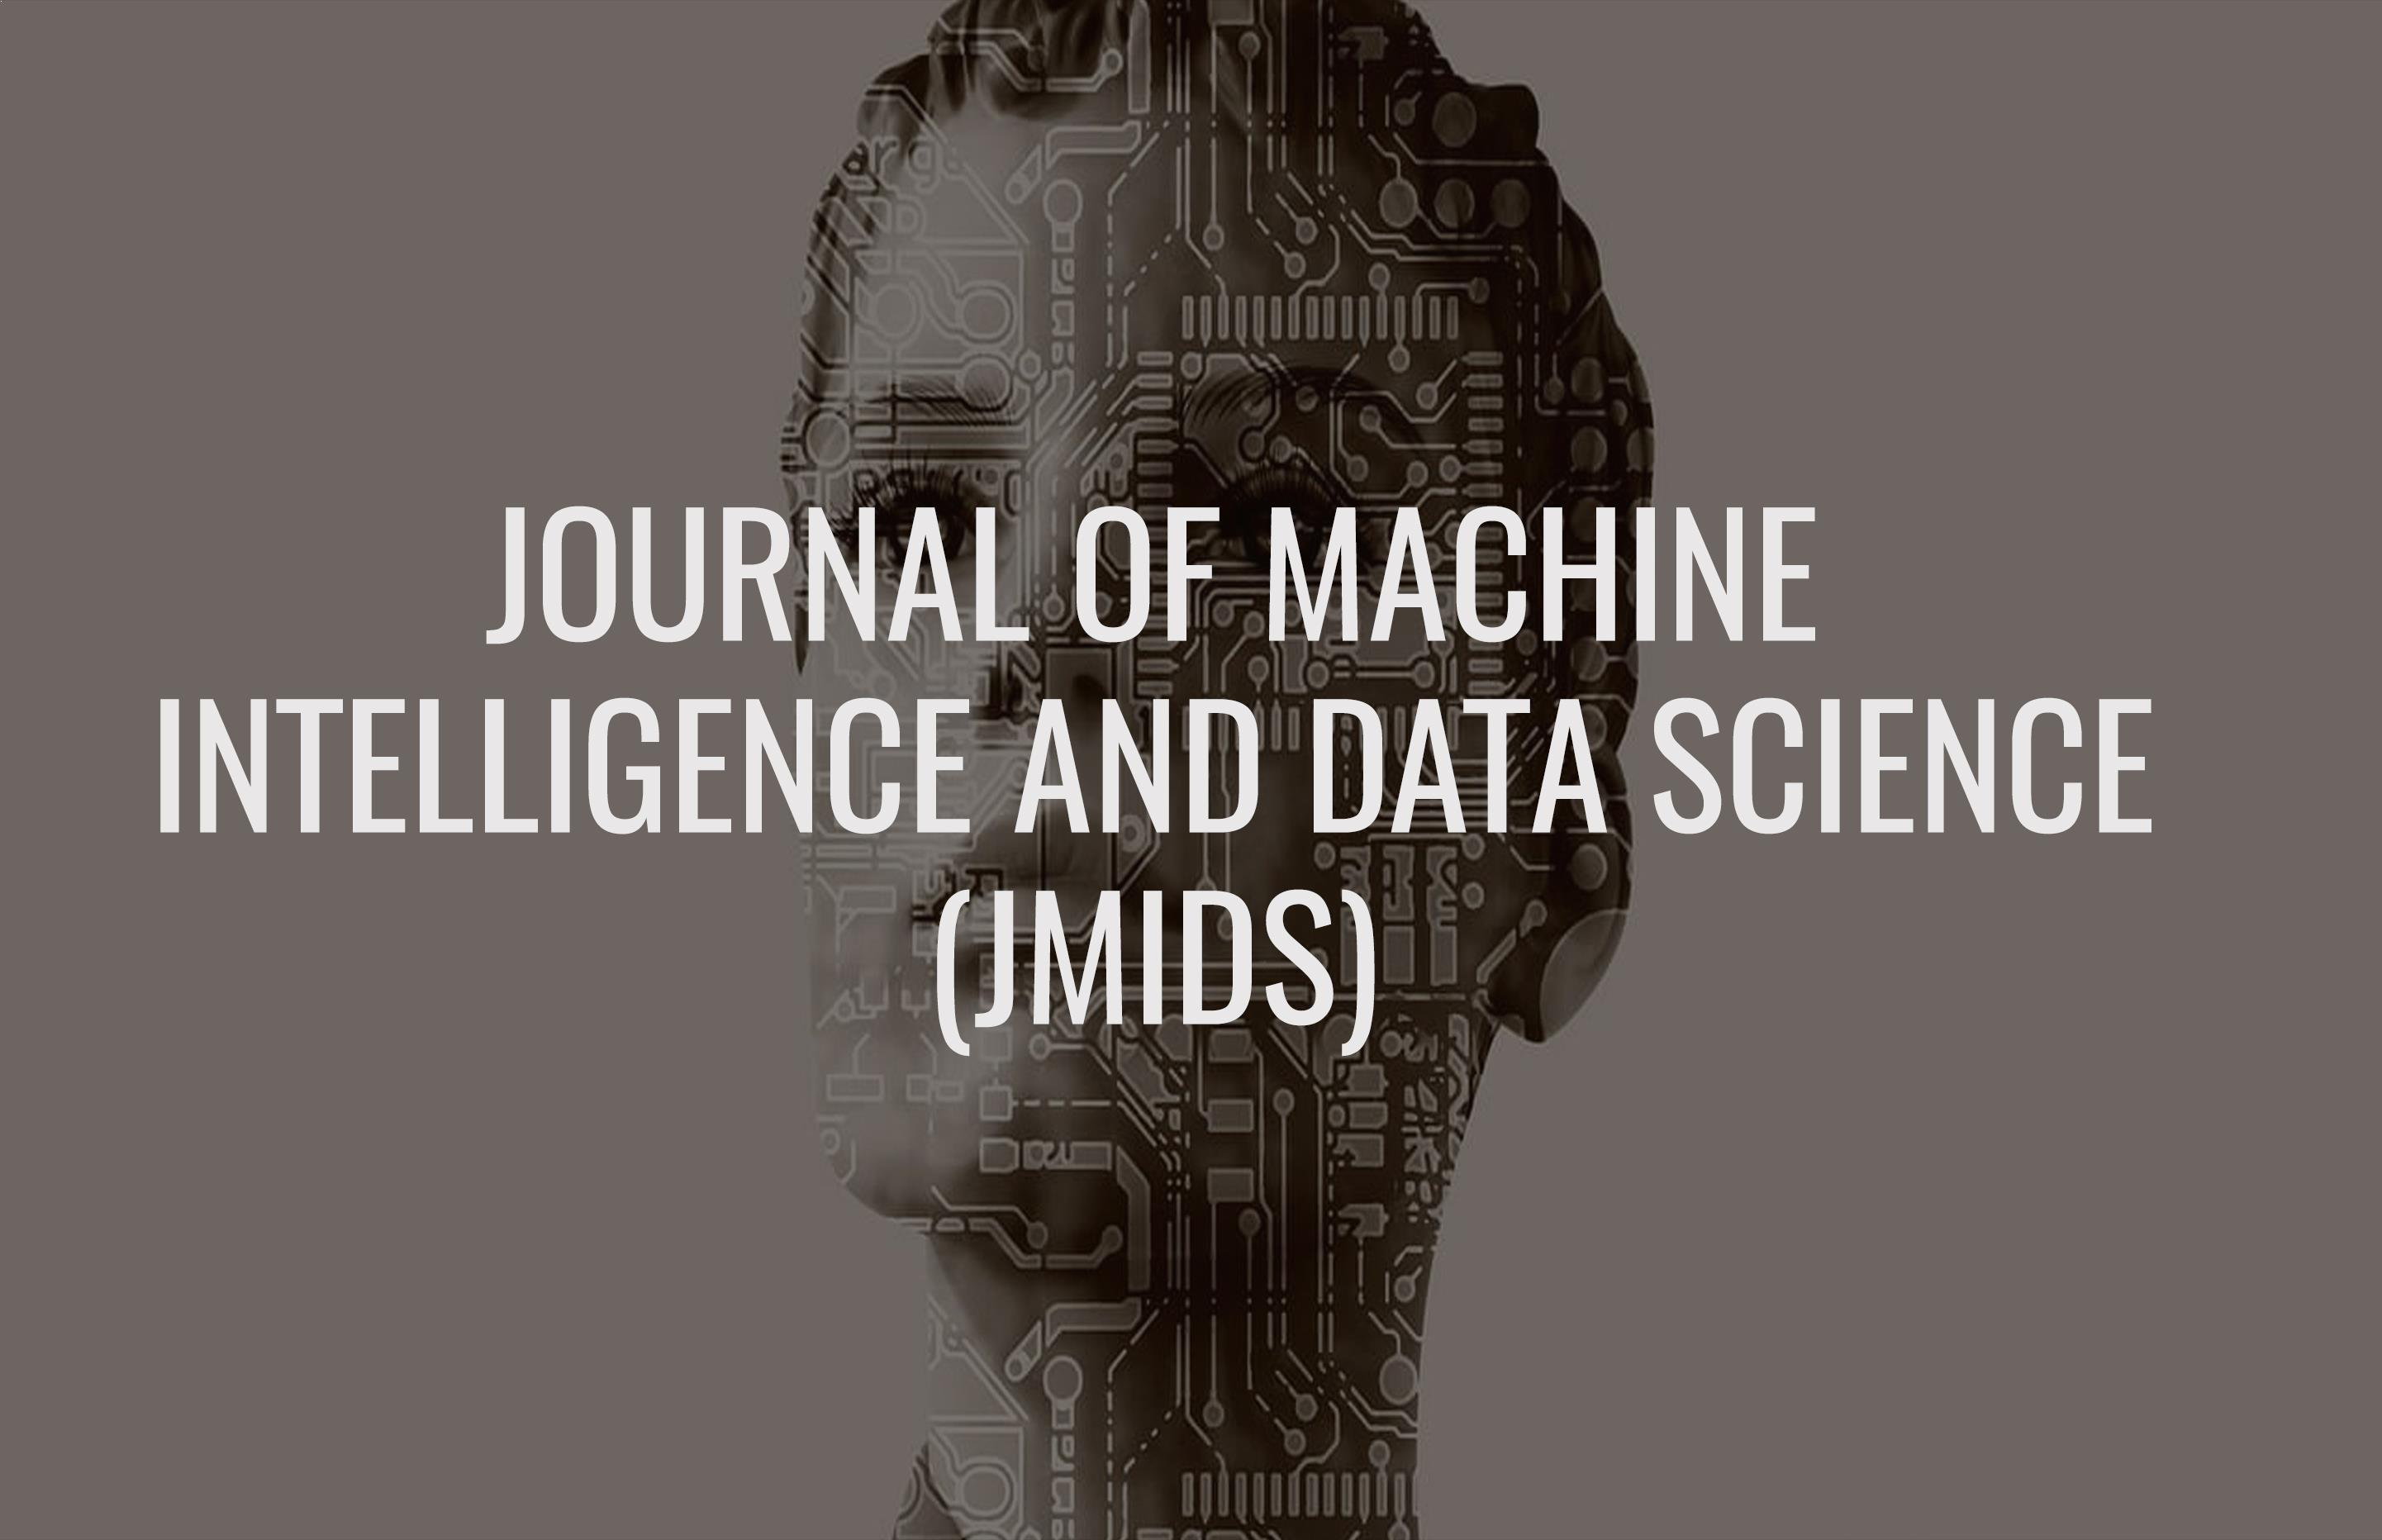 Journal of Machine Intelligence and Data Science (JMIDS)